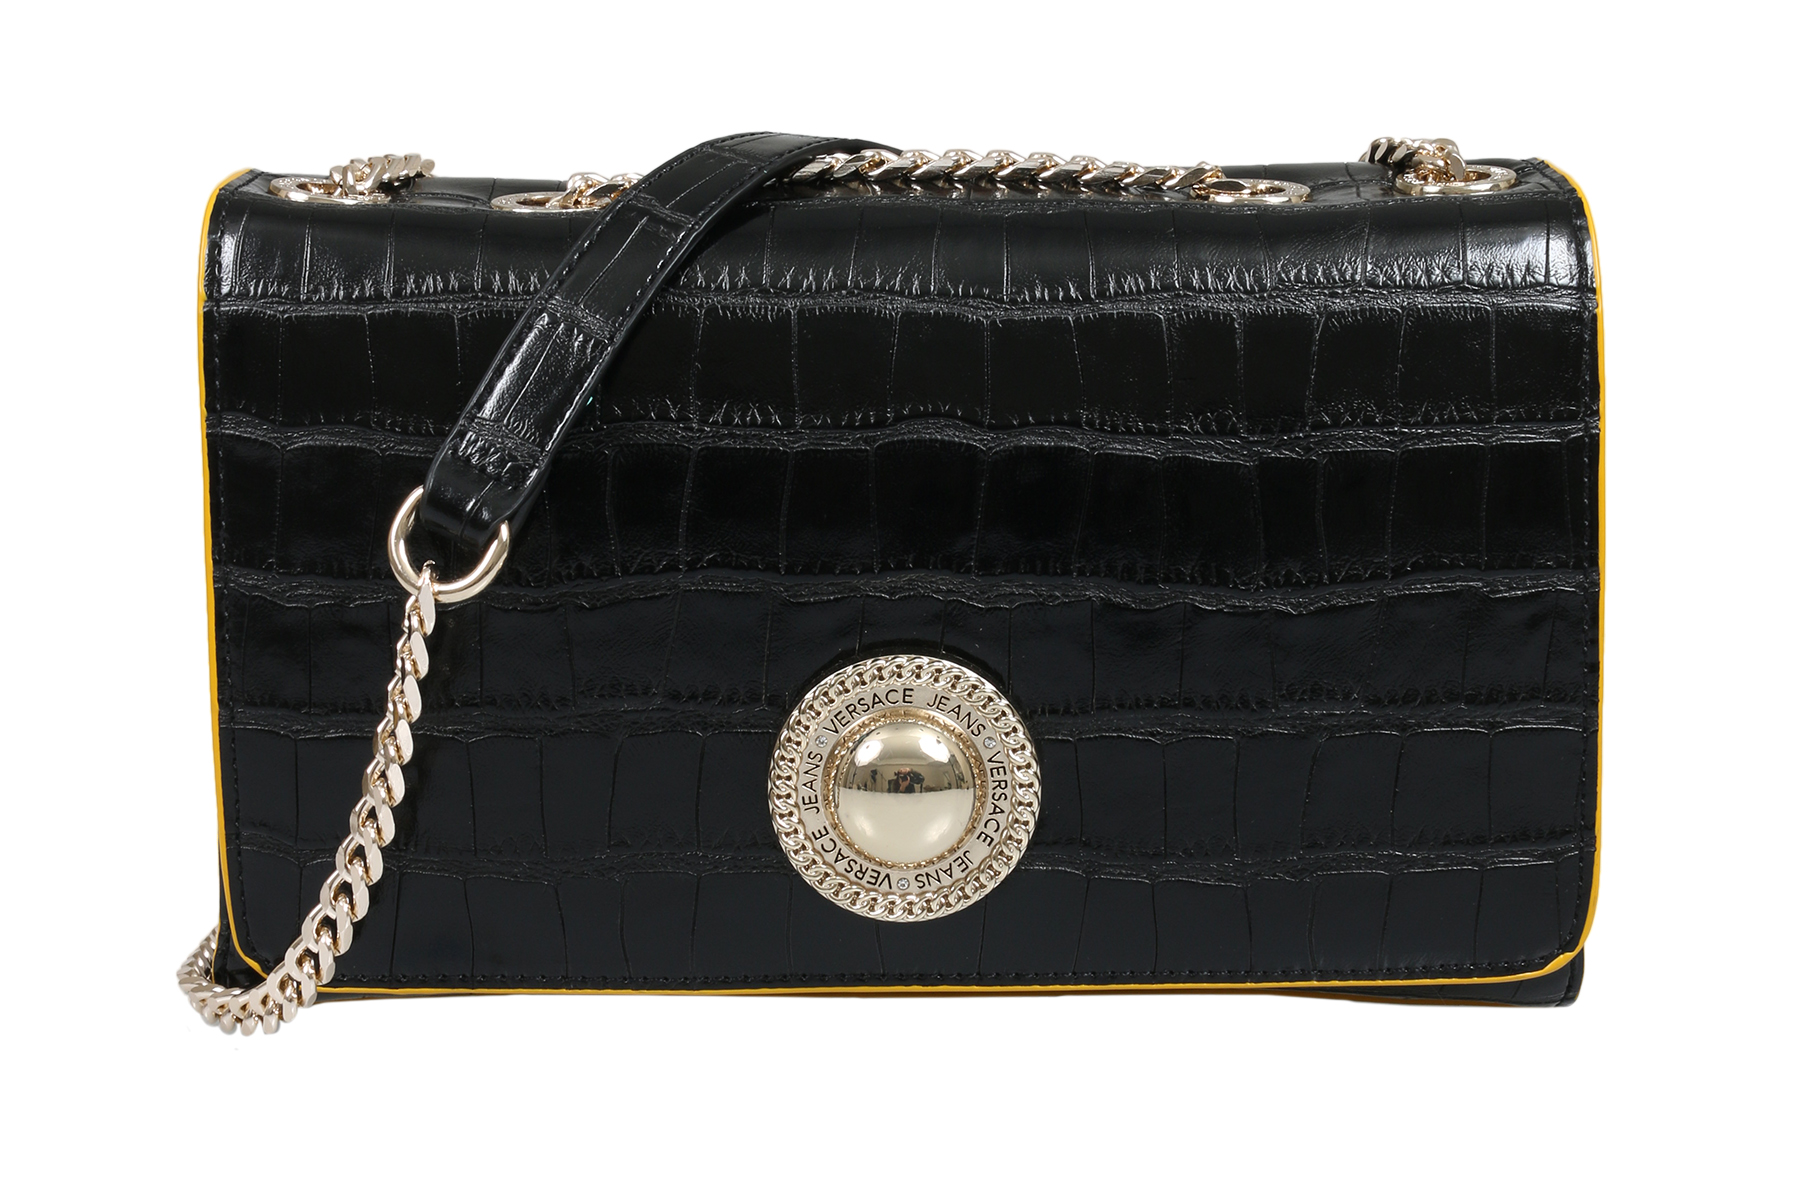 ... Picture 2 of 5  Picture 3 of 5  Picture 4 of 5. 2. Versace EE1VSBBOA  E899 Black Shoulder Bag 307bf67711829